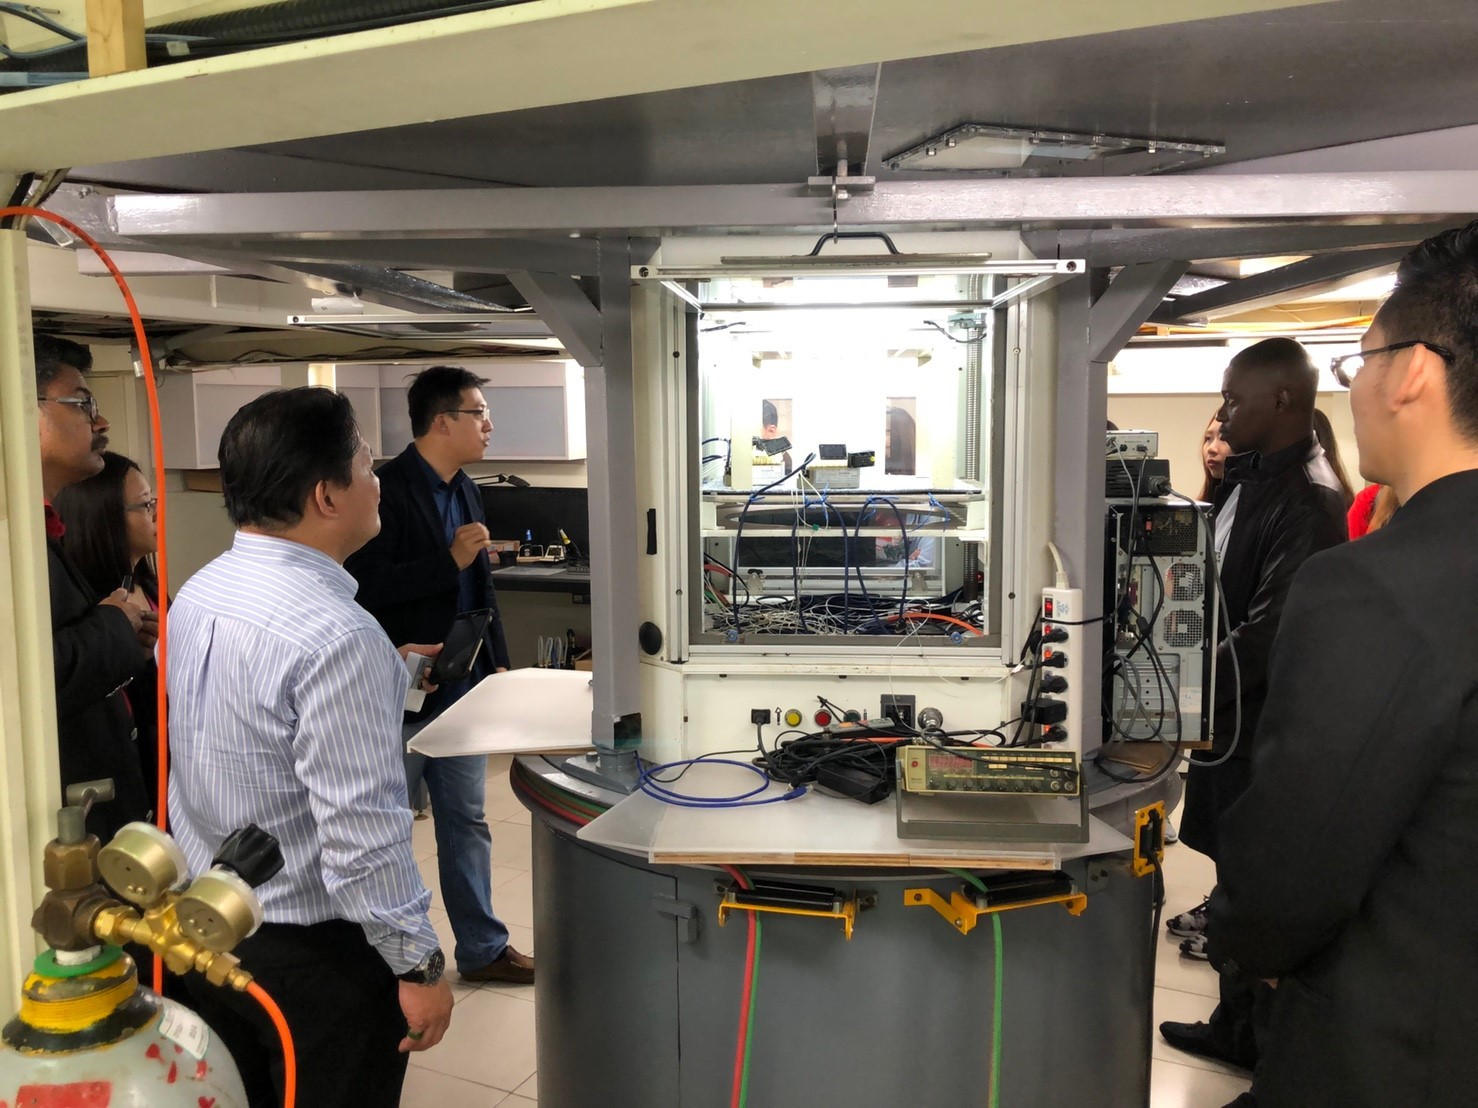 2019.02.19-02.23 Taiwan Industry and Education Visiting Group